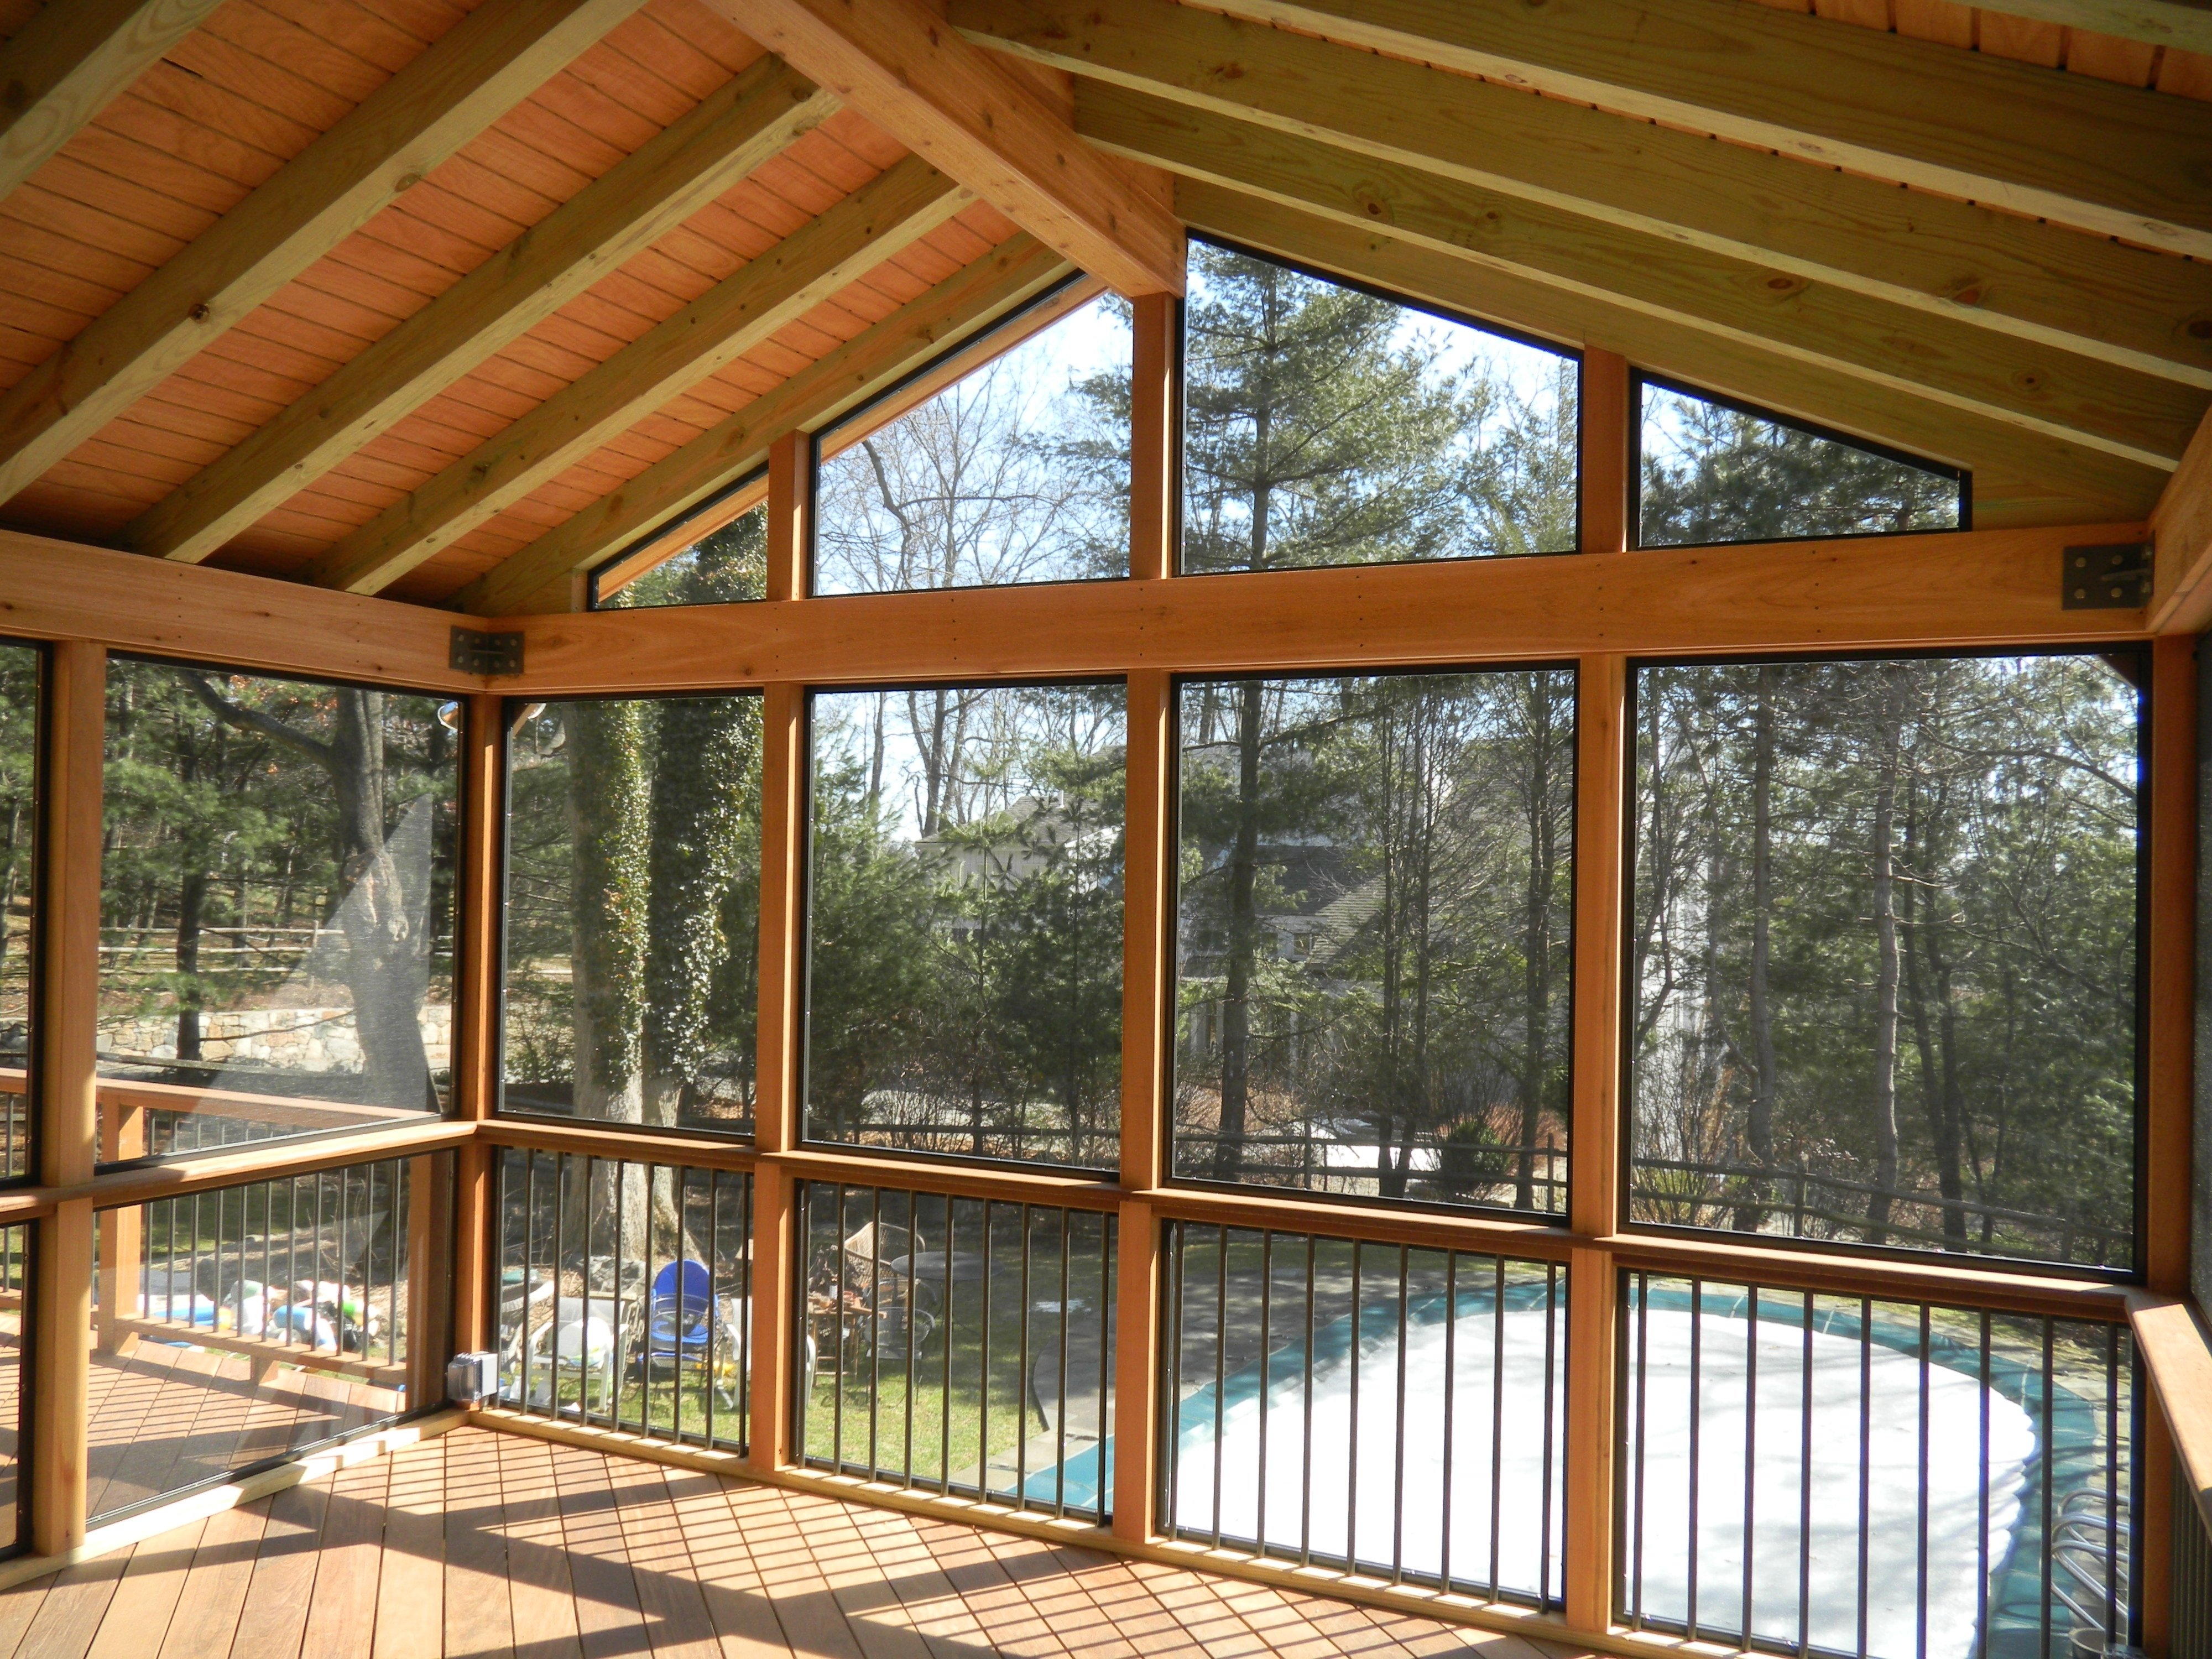 10 Trendy Ideas For Screened In Porches amazing brushed bronze frames custom screen porch ideas for covers 2020